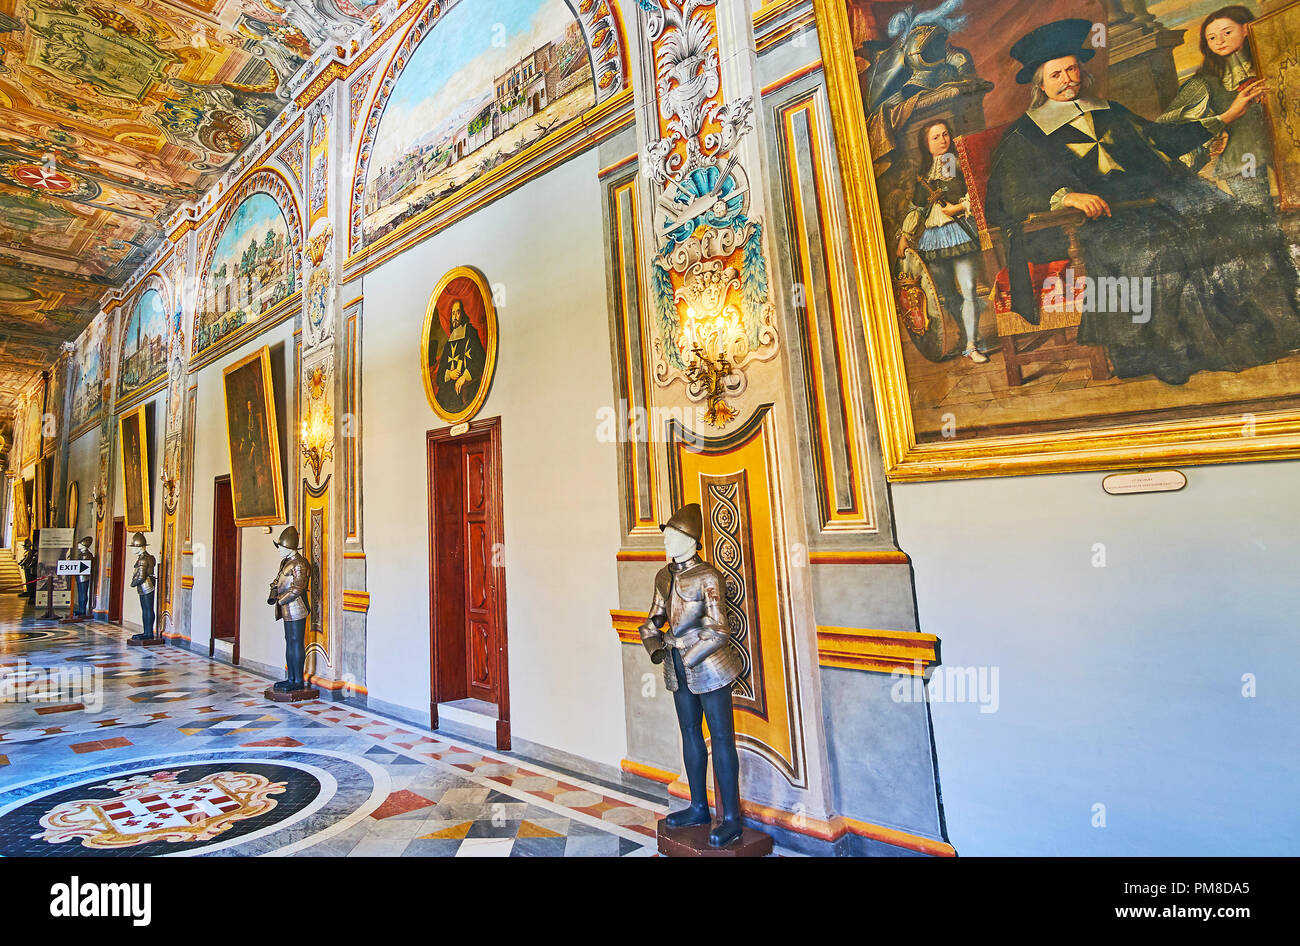 VALLETTA, MALTA - JUNE 17, 2018: The State Rooms of Grandmaster's Palace is one of the main city landmarks, on June 17 in Valletta. - Stock Image